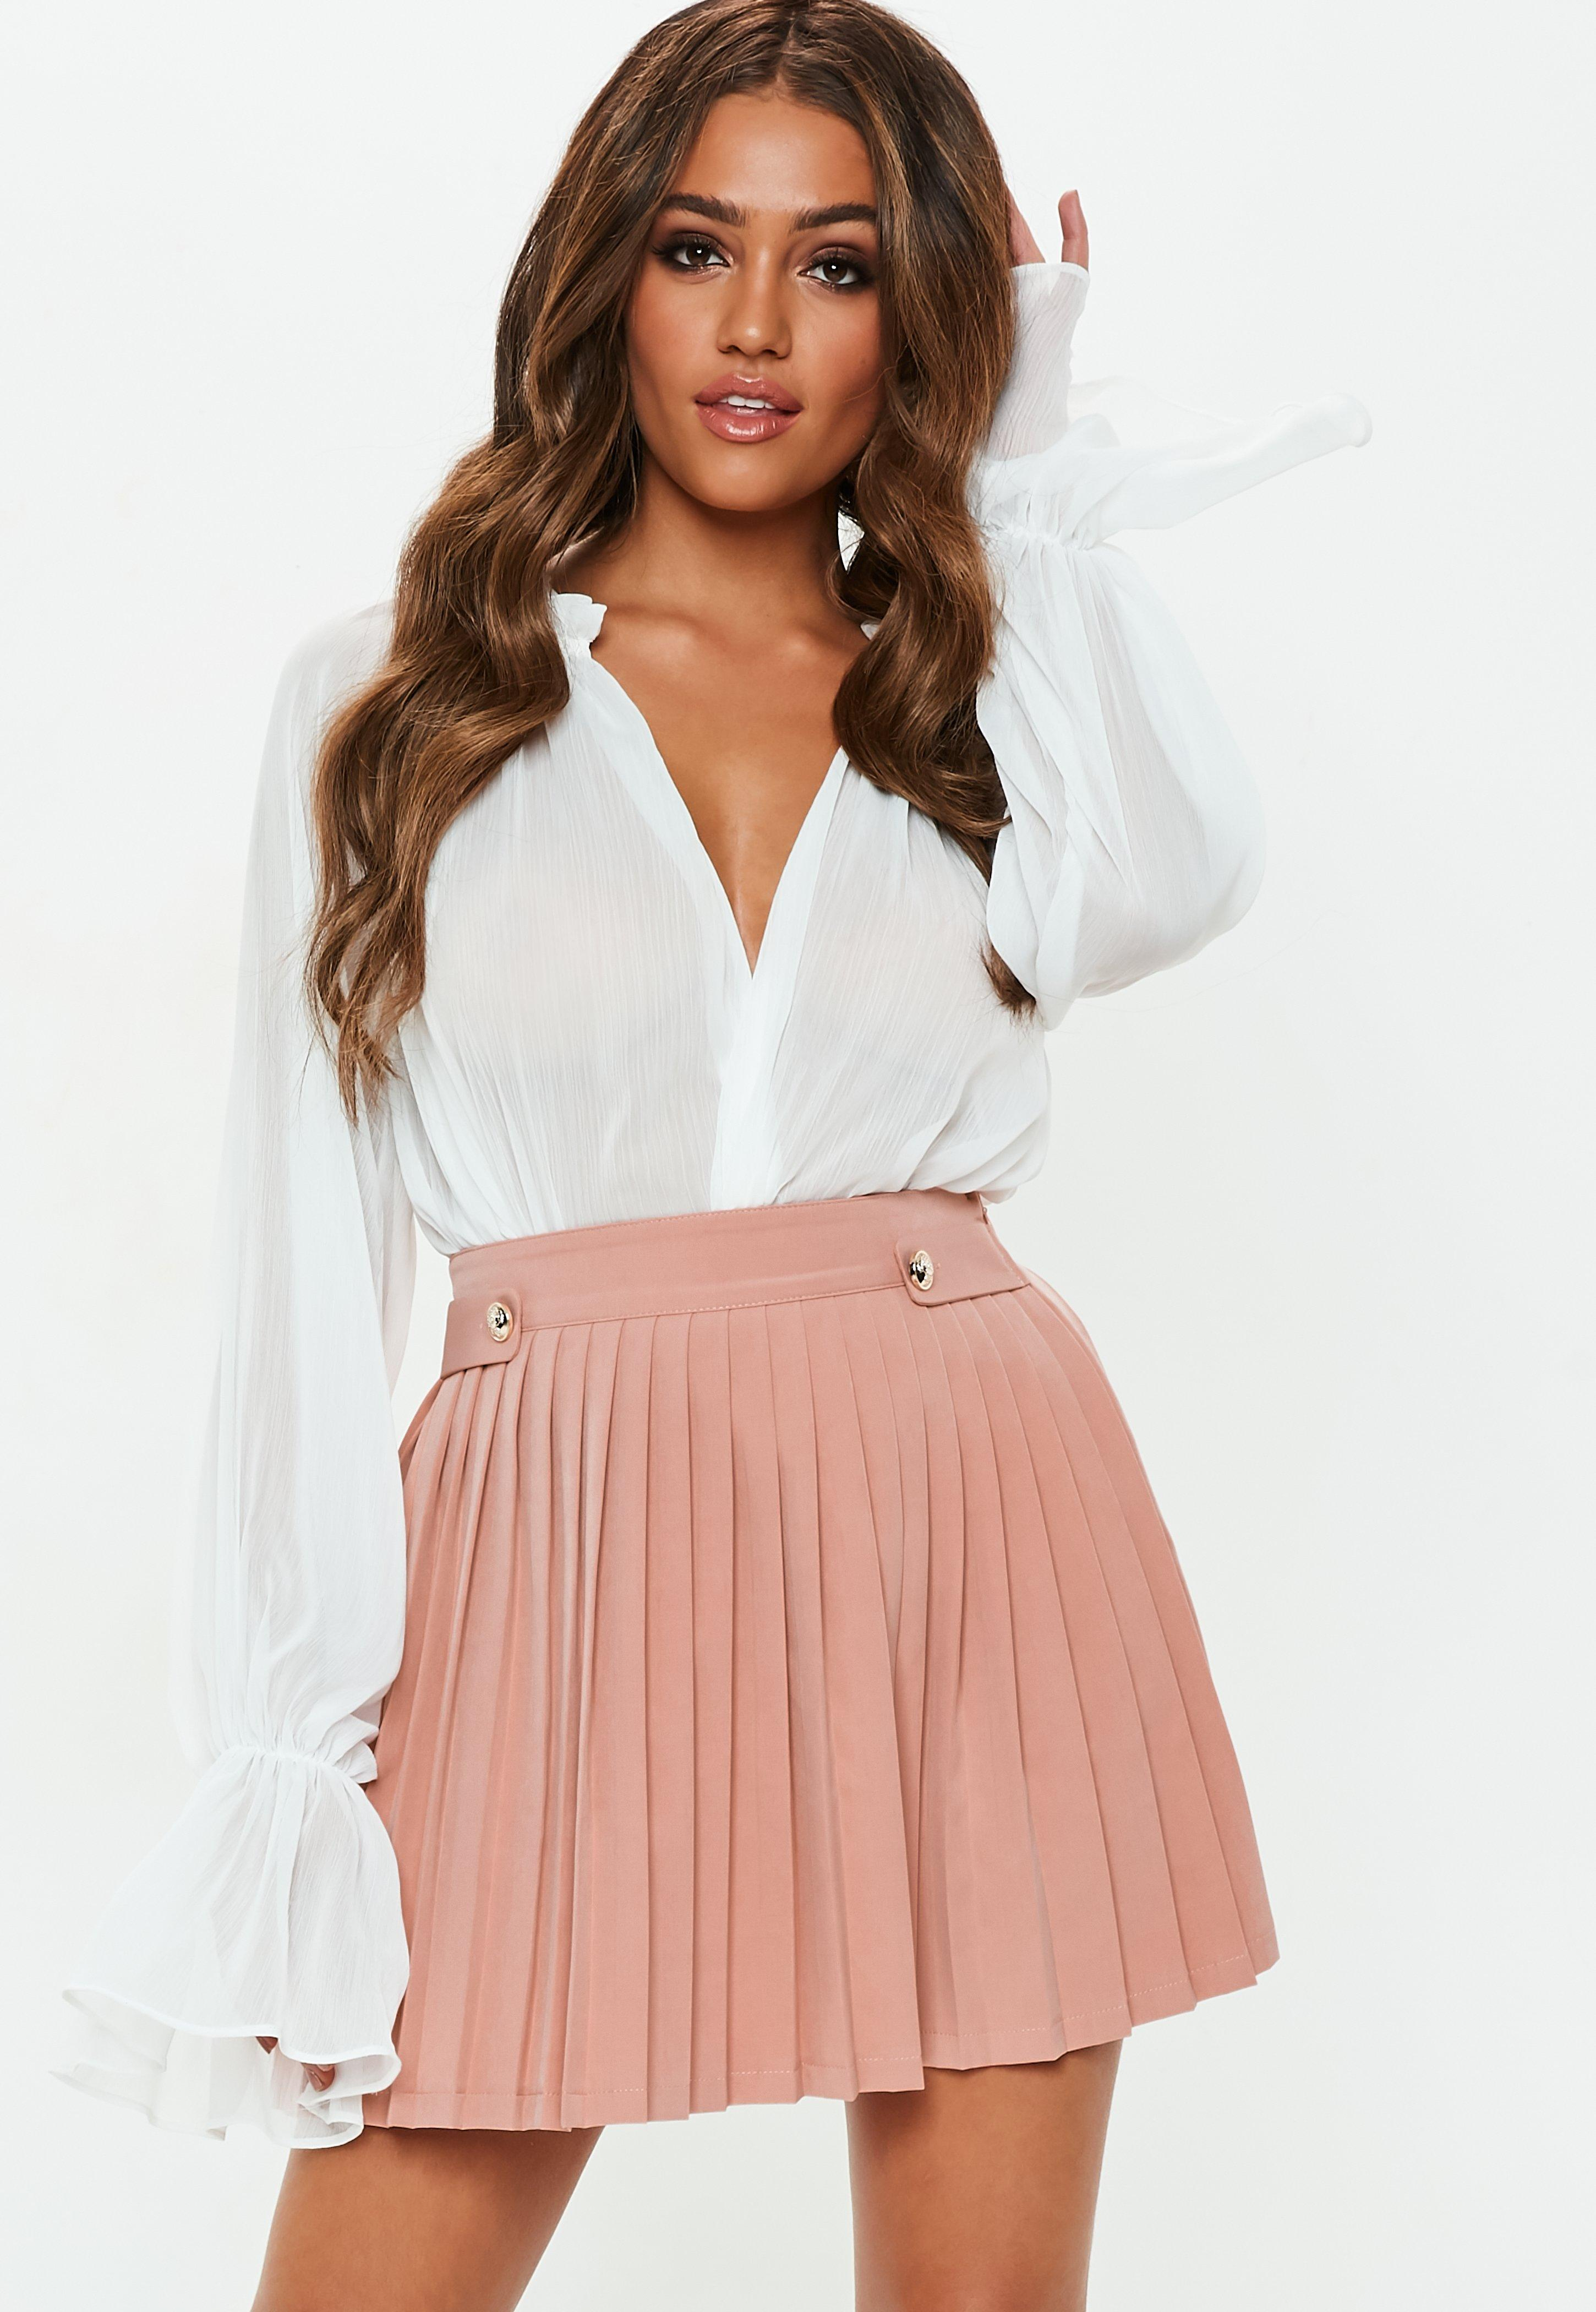 Skirts | Women\'s Skirts from $15 - Missguided